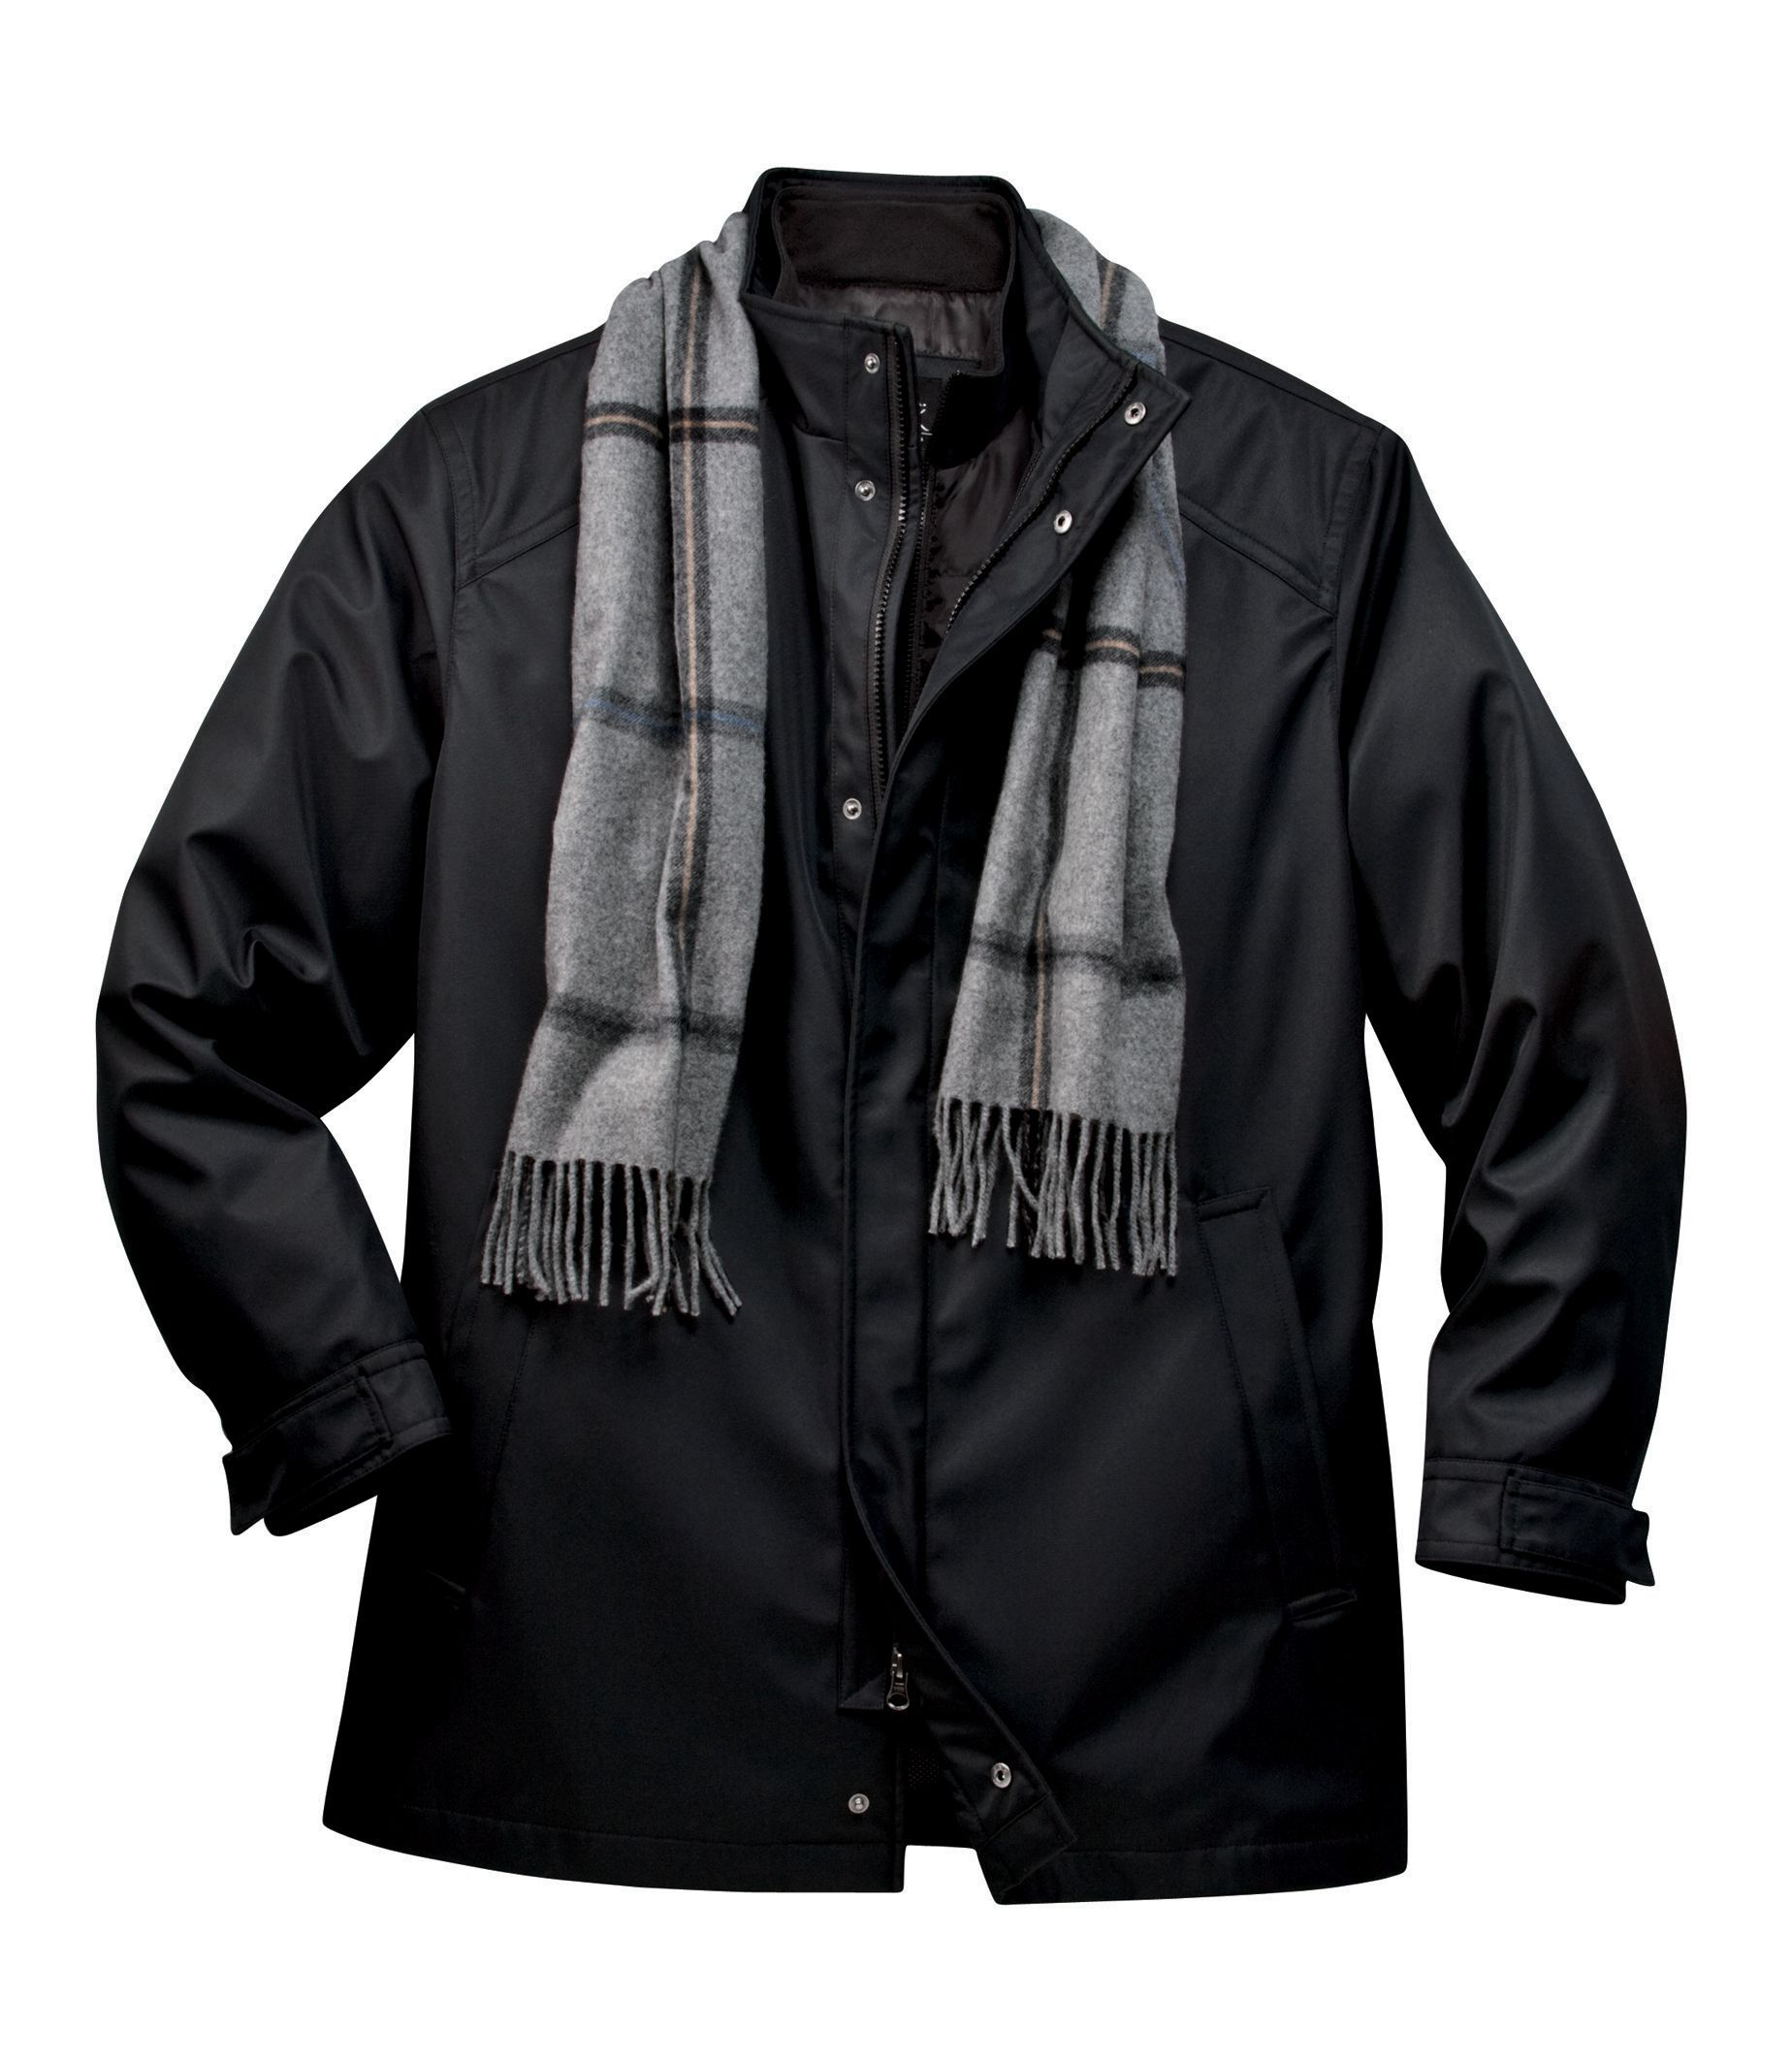 Two-In-One Cold Weather Jacket | Don't forget the Men | Pinterest ...